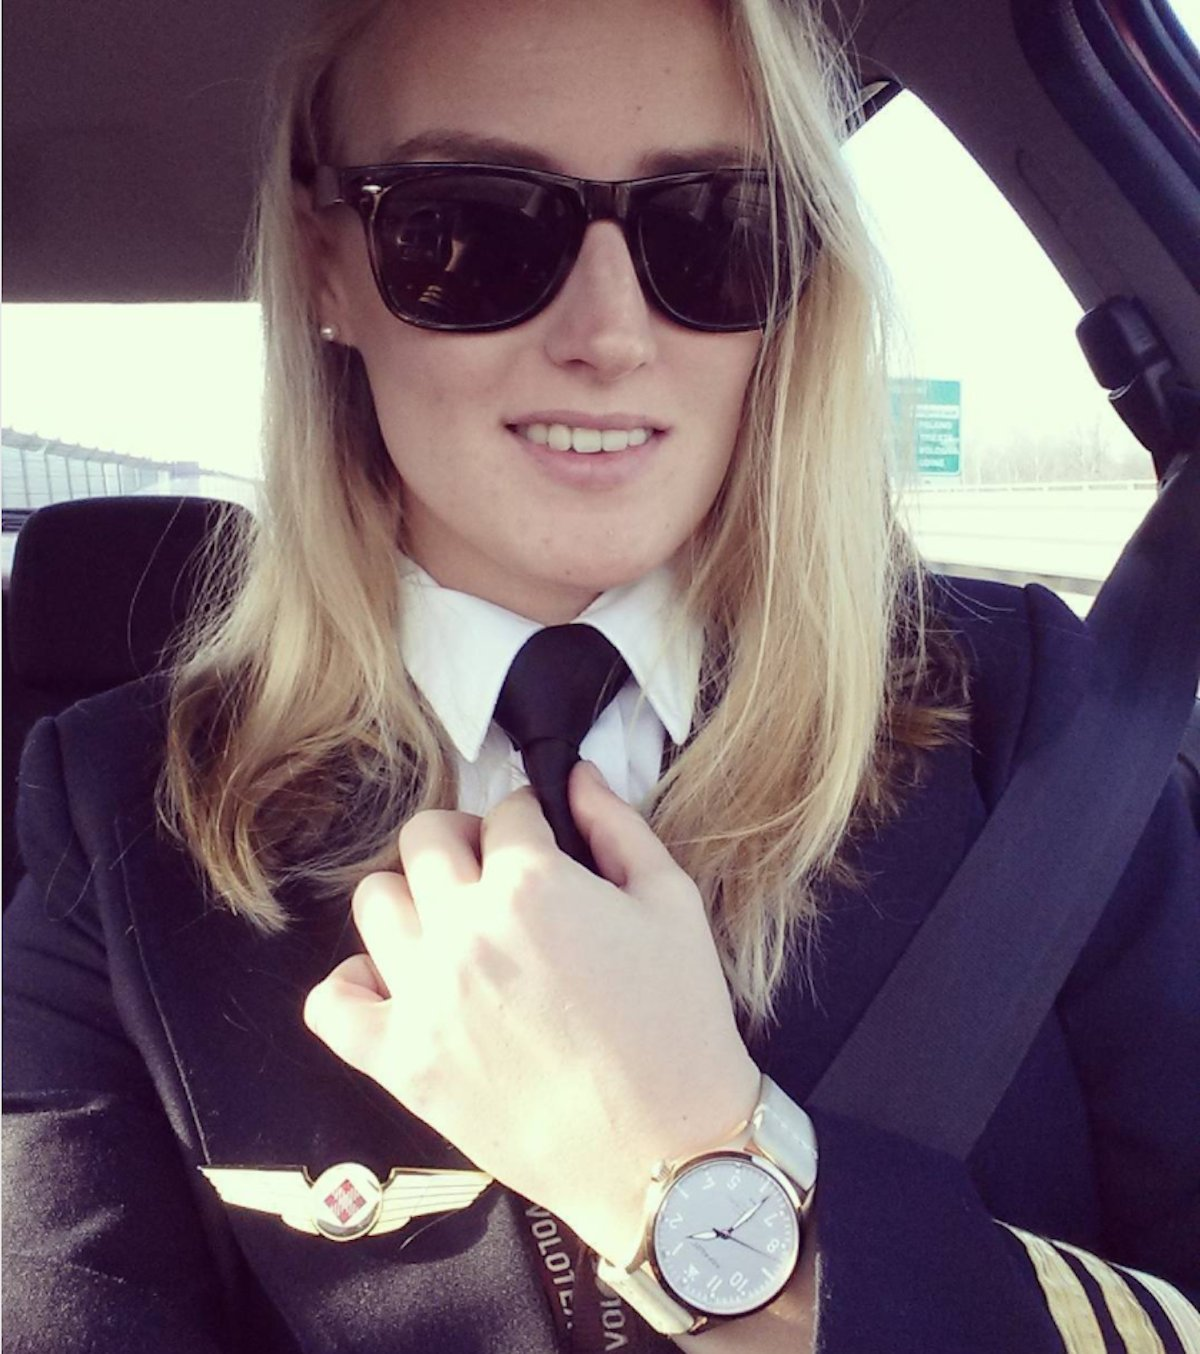 like-eser-lindy-kats-pilotlindy-was-born-in-the-netherlands-shes-now-based-in-italy